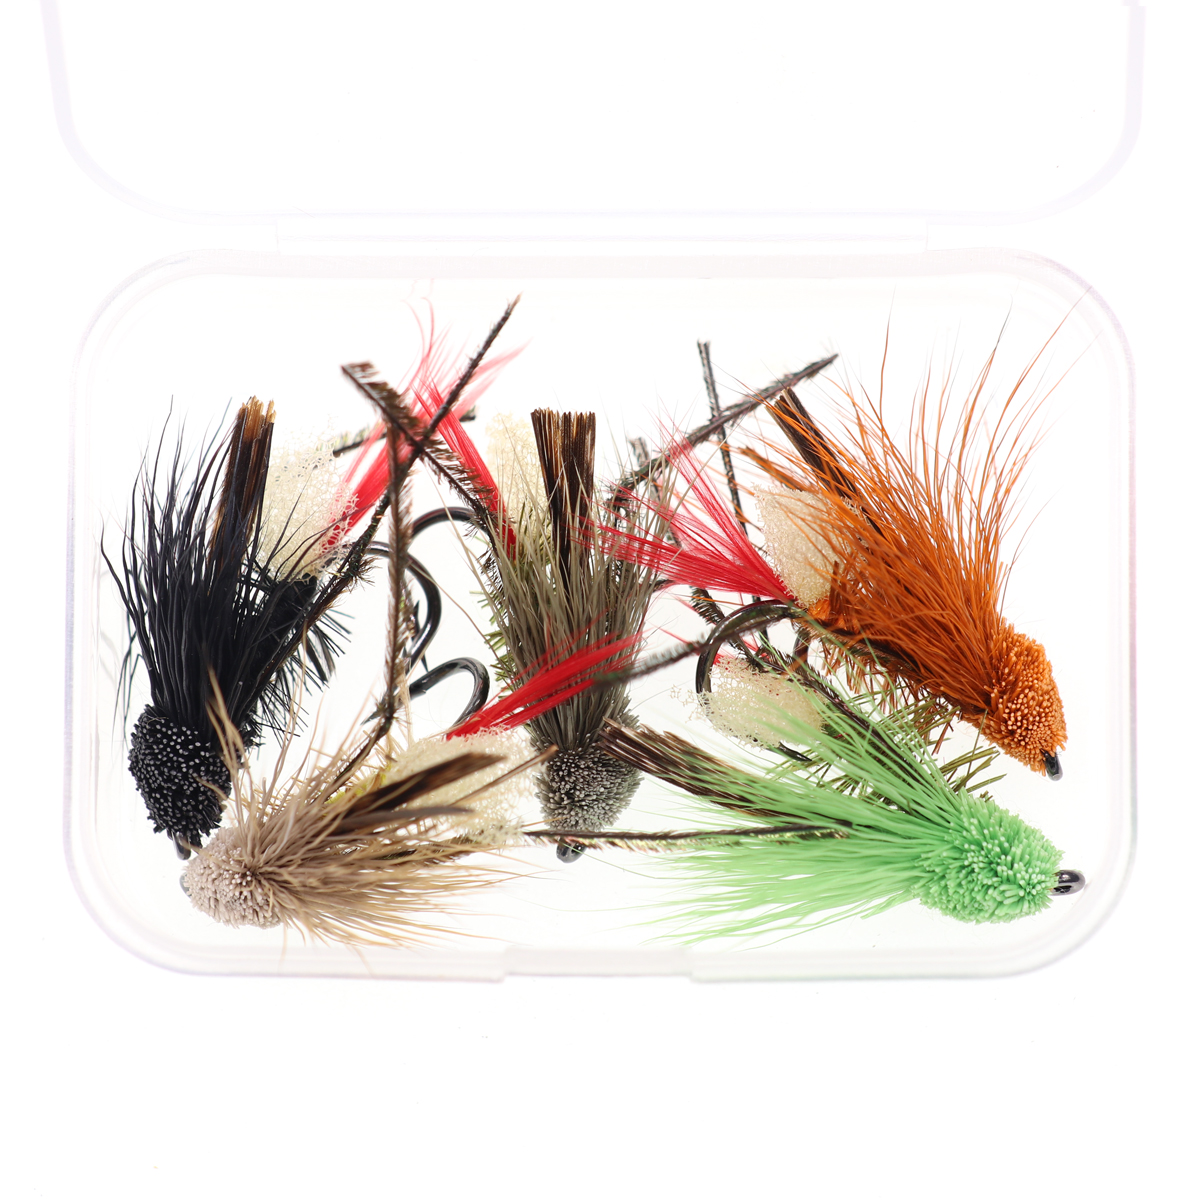 5PCS #10 Trout Fishing Fly Grass Hopper Fly terrestrial Hopper Fly Floating Bass Crappie Bug Bait Artificial Lure 8